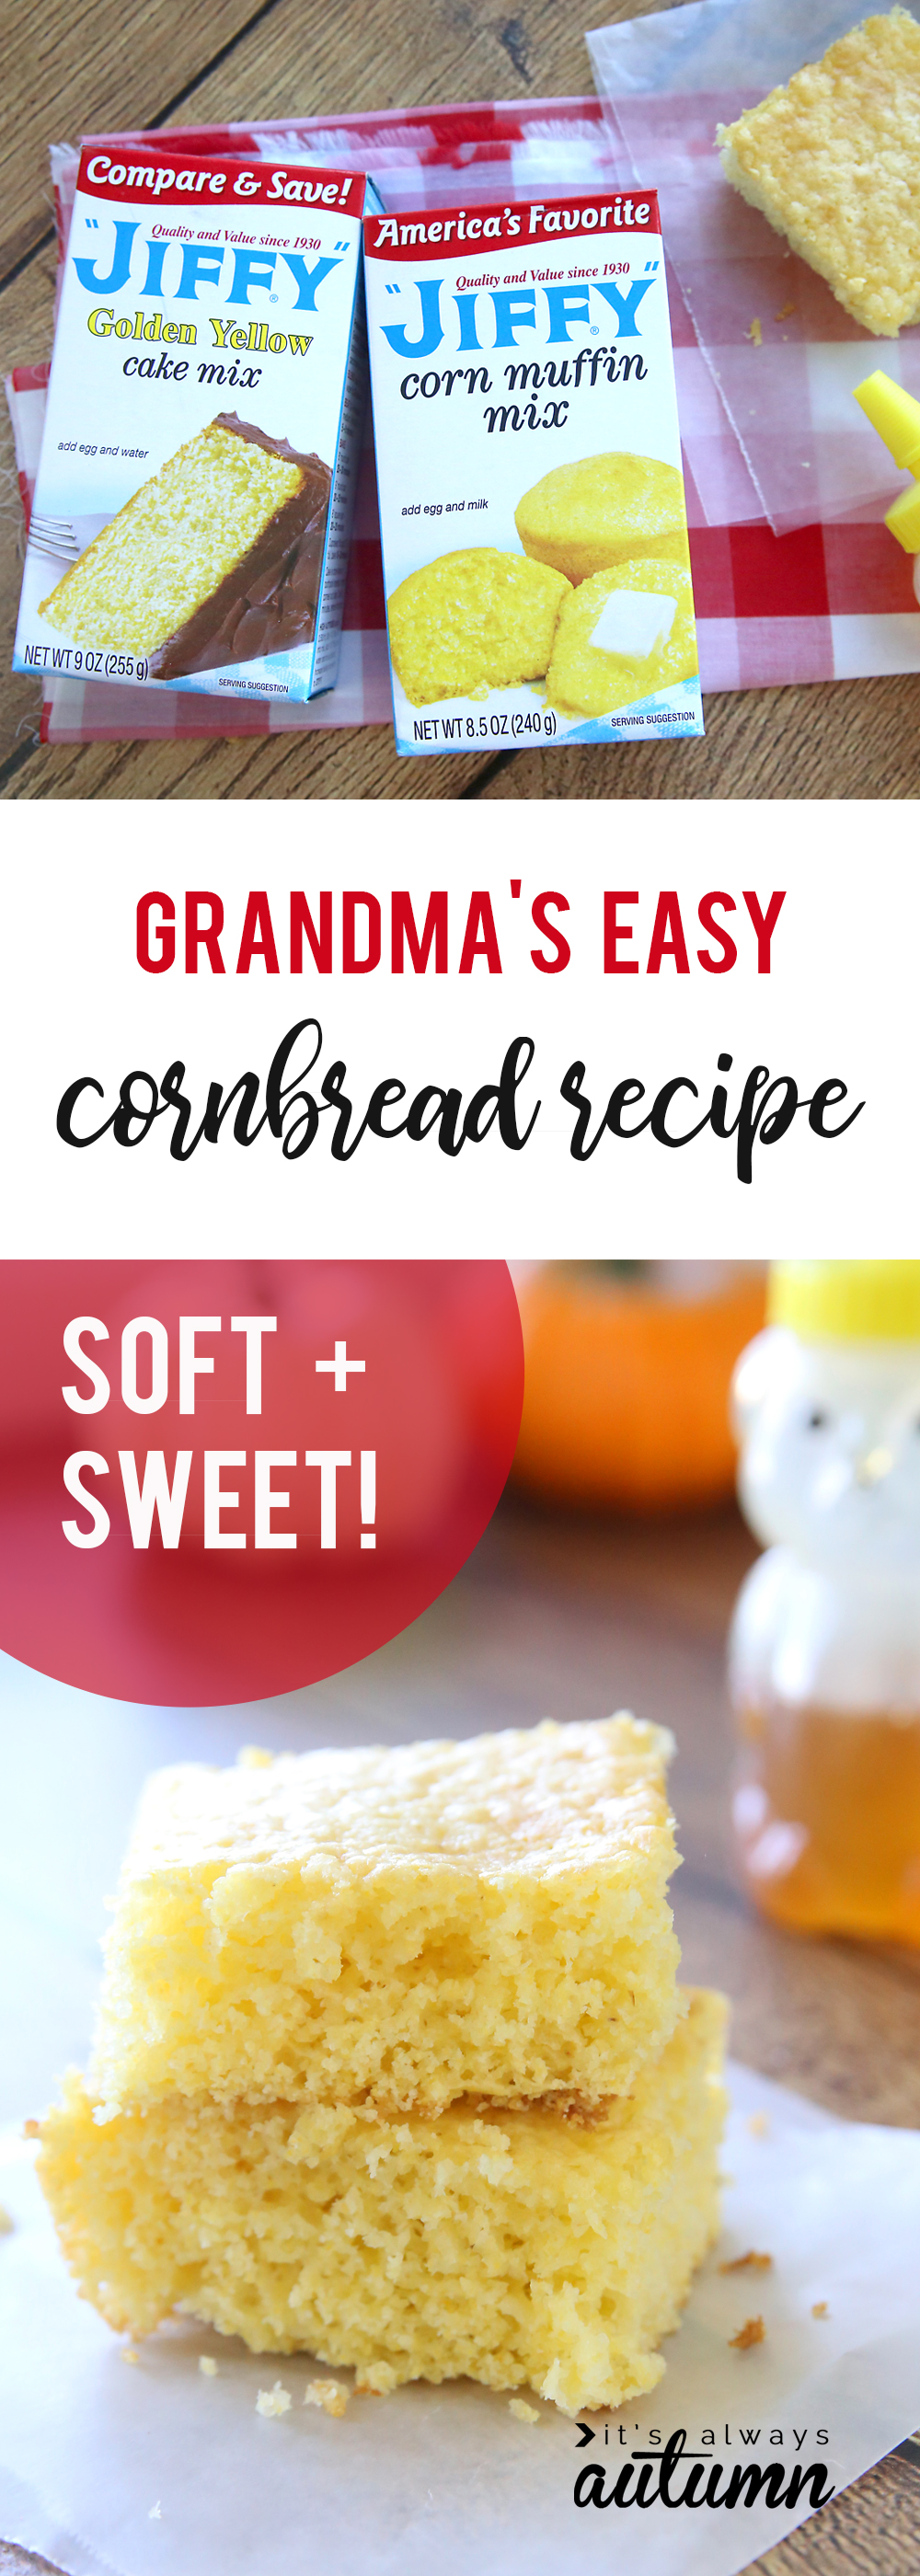 Quick Easy Sweet Jiffy Cornbread Recipe Everyone Will Love It S Always Autumn